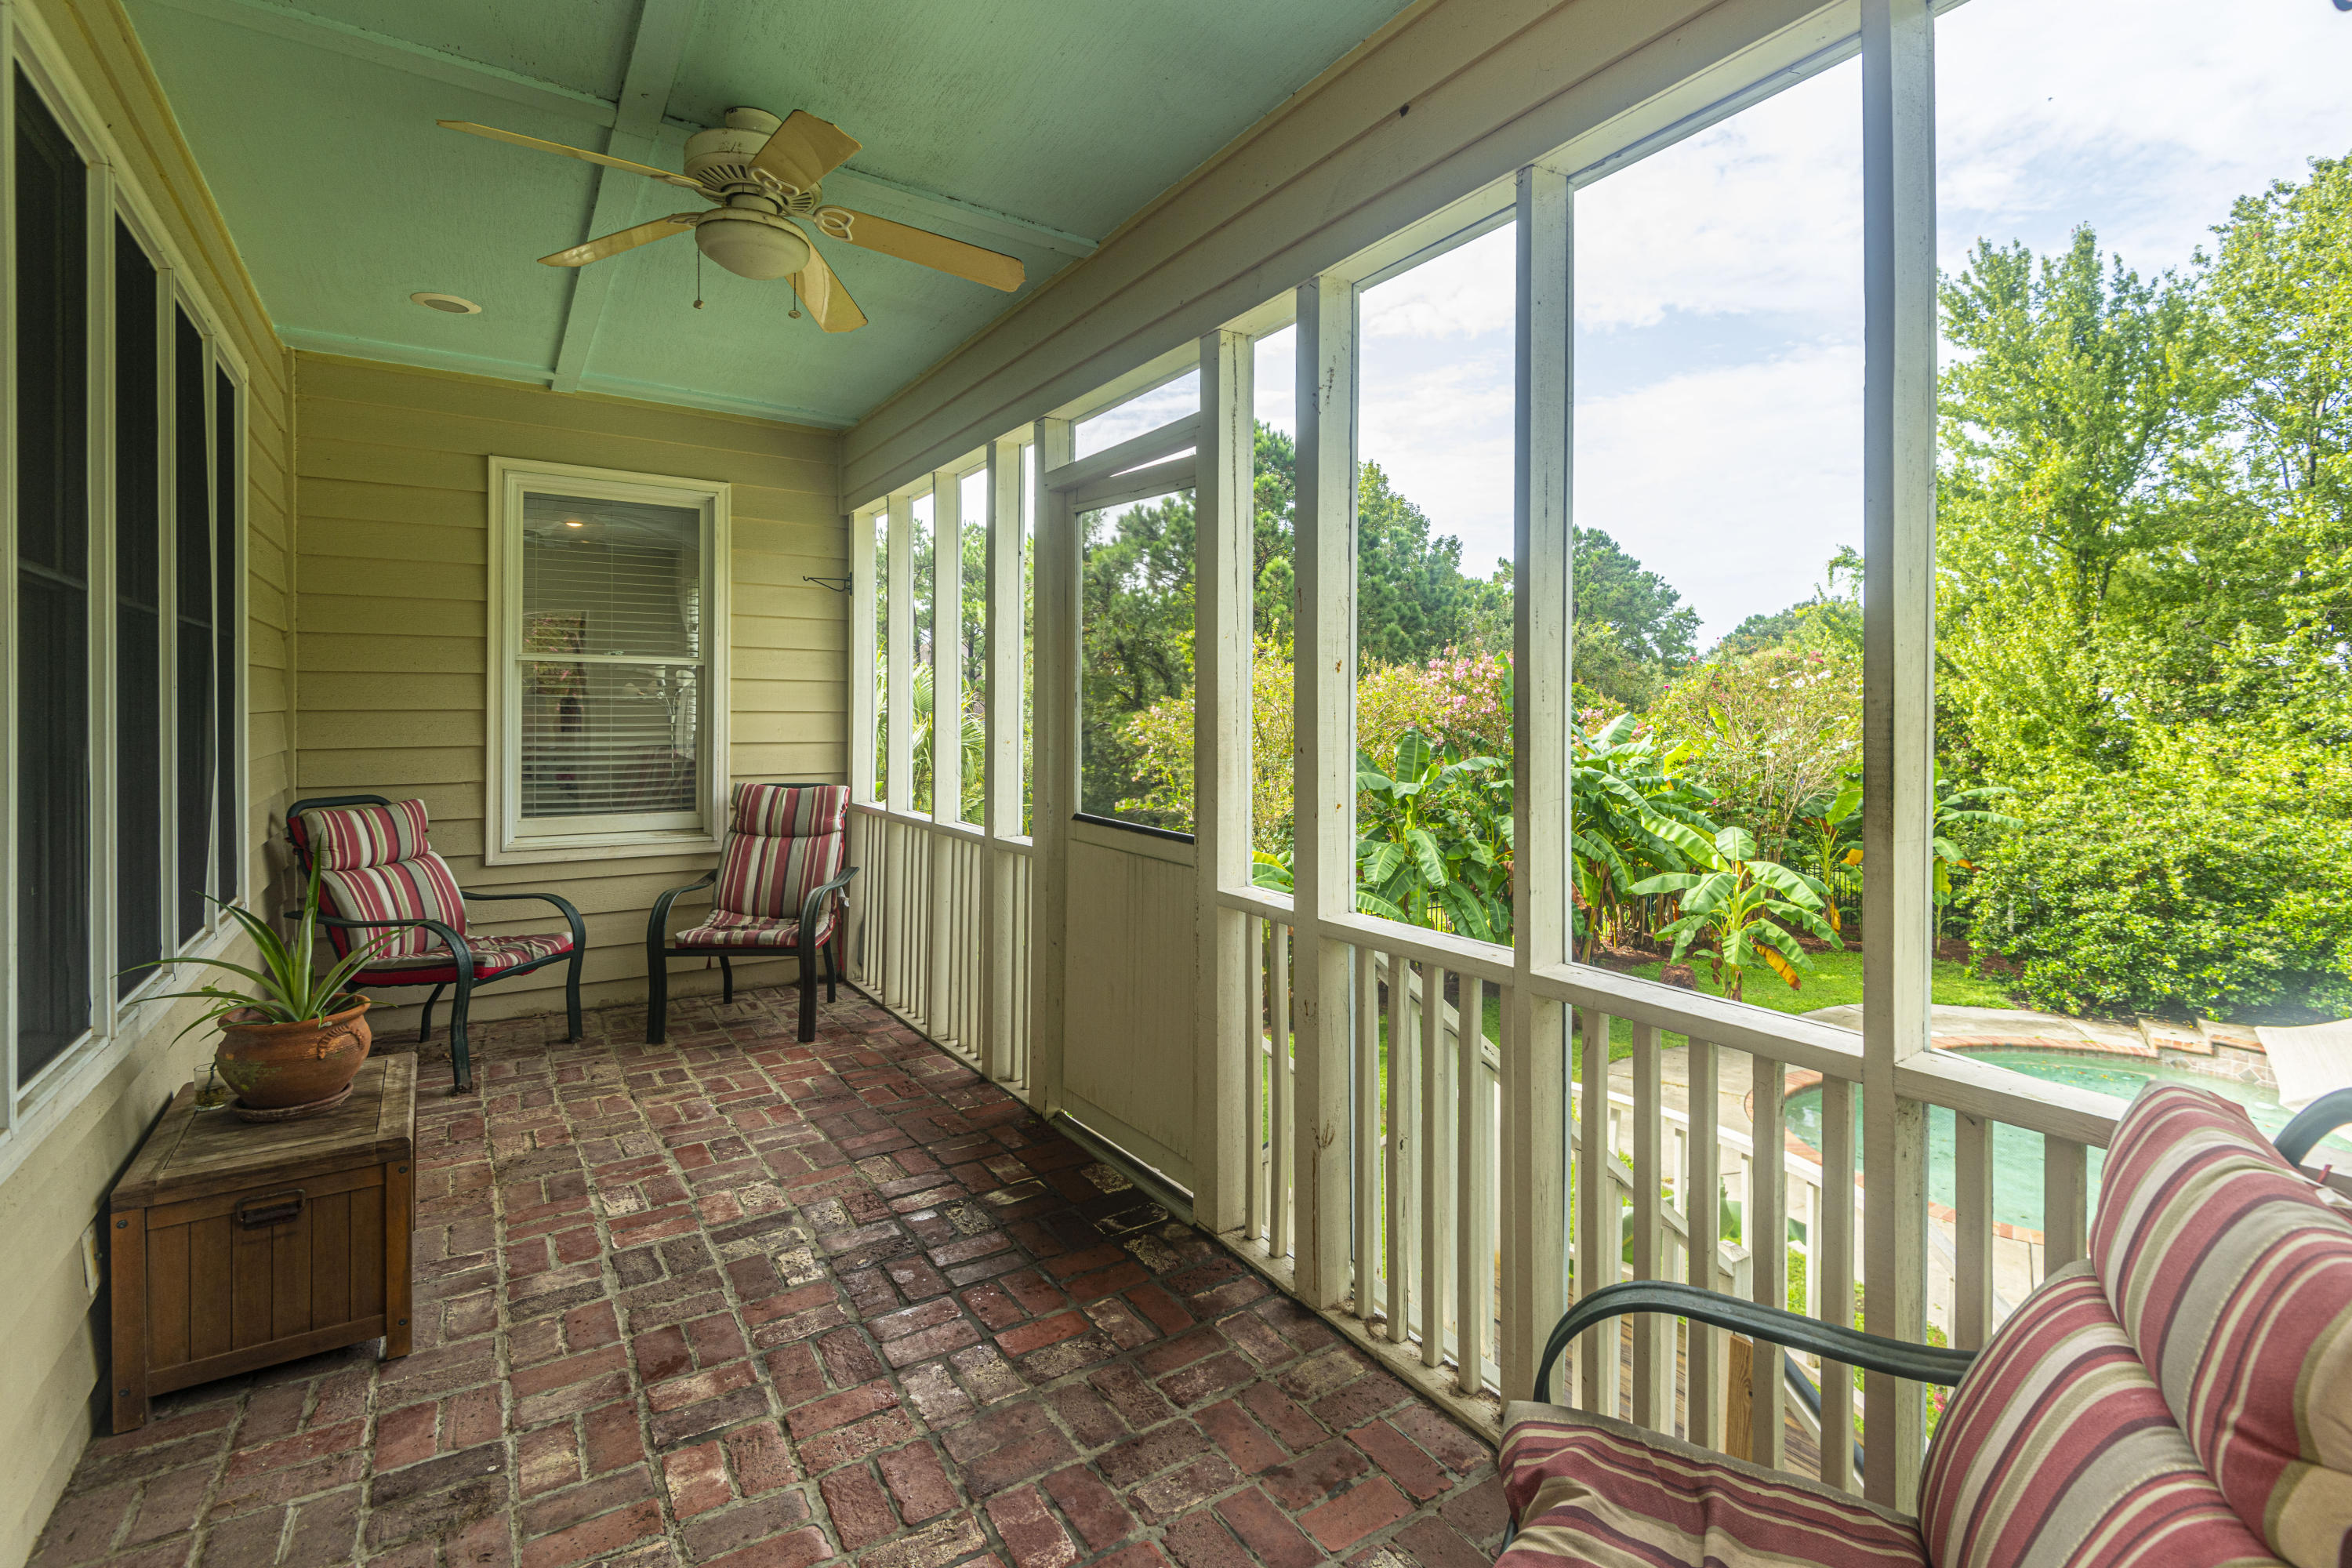 Headquarters Plantation Homes For Sale - 1548 Headquarters Plantation, Johns Island, SC - 24